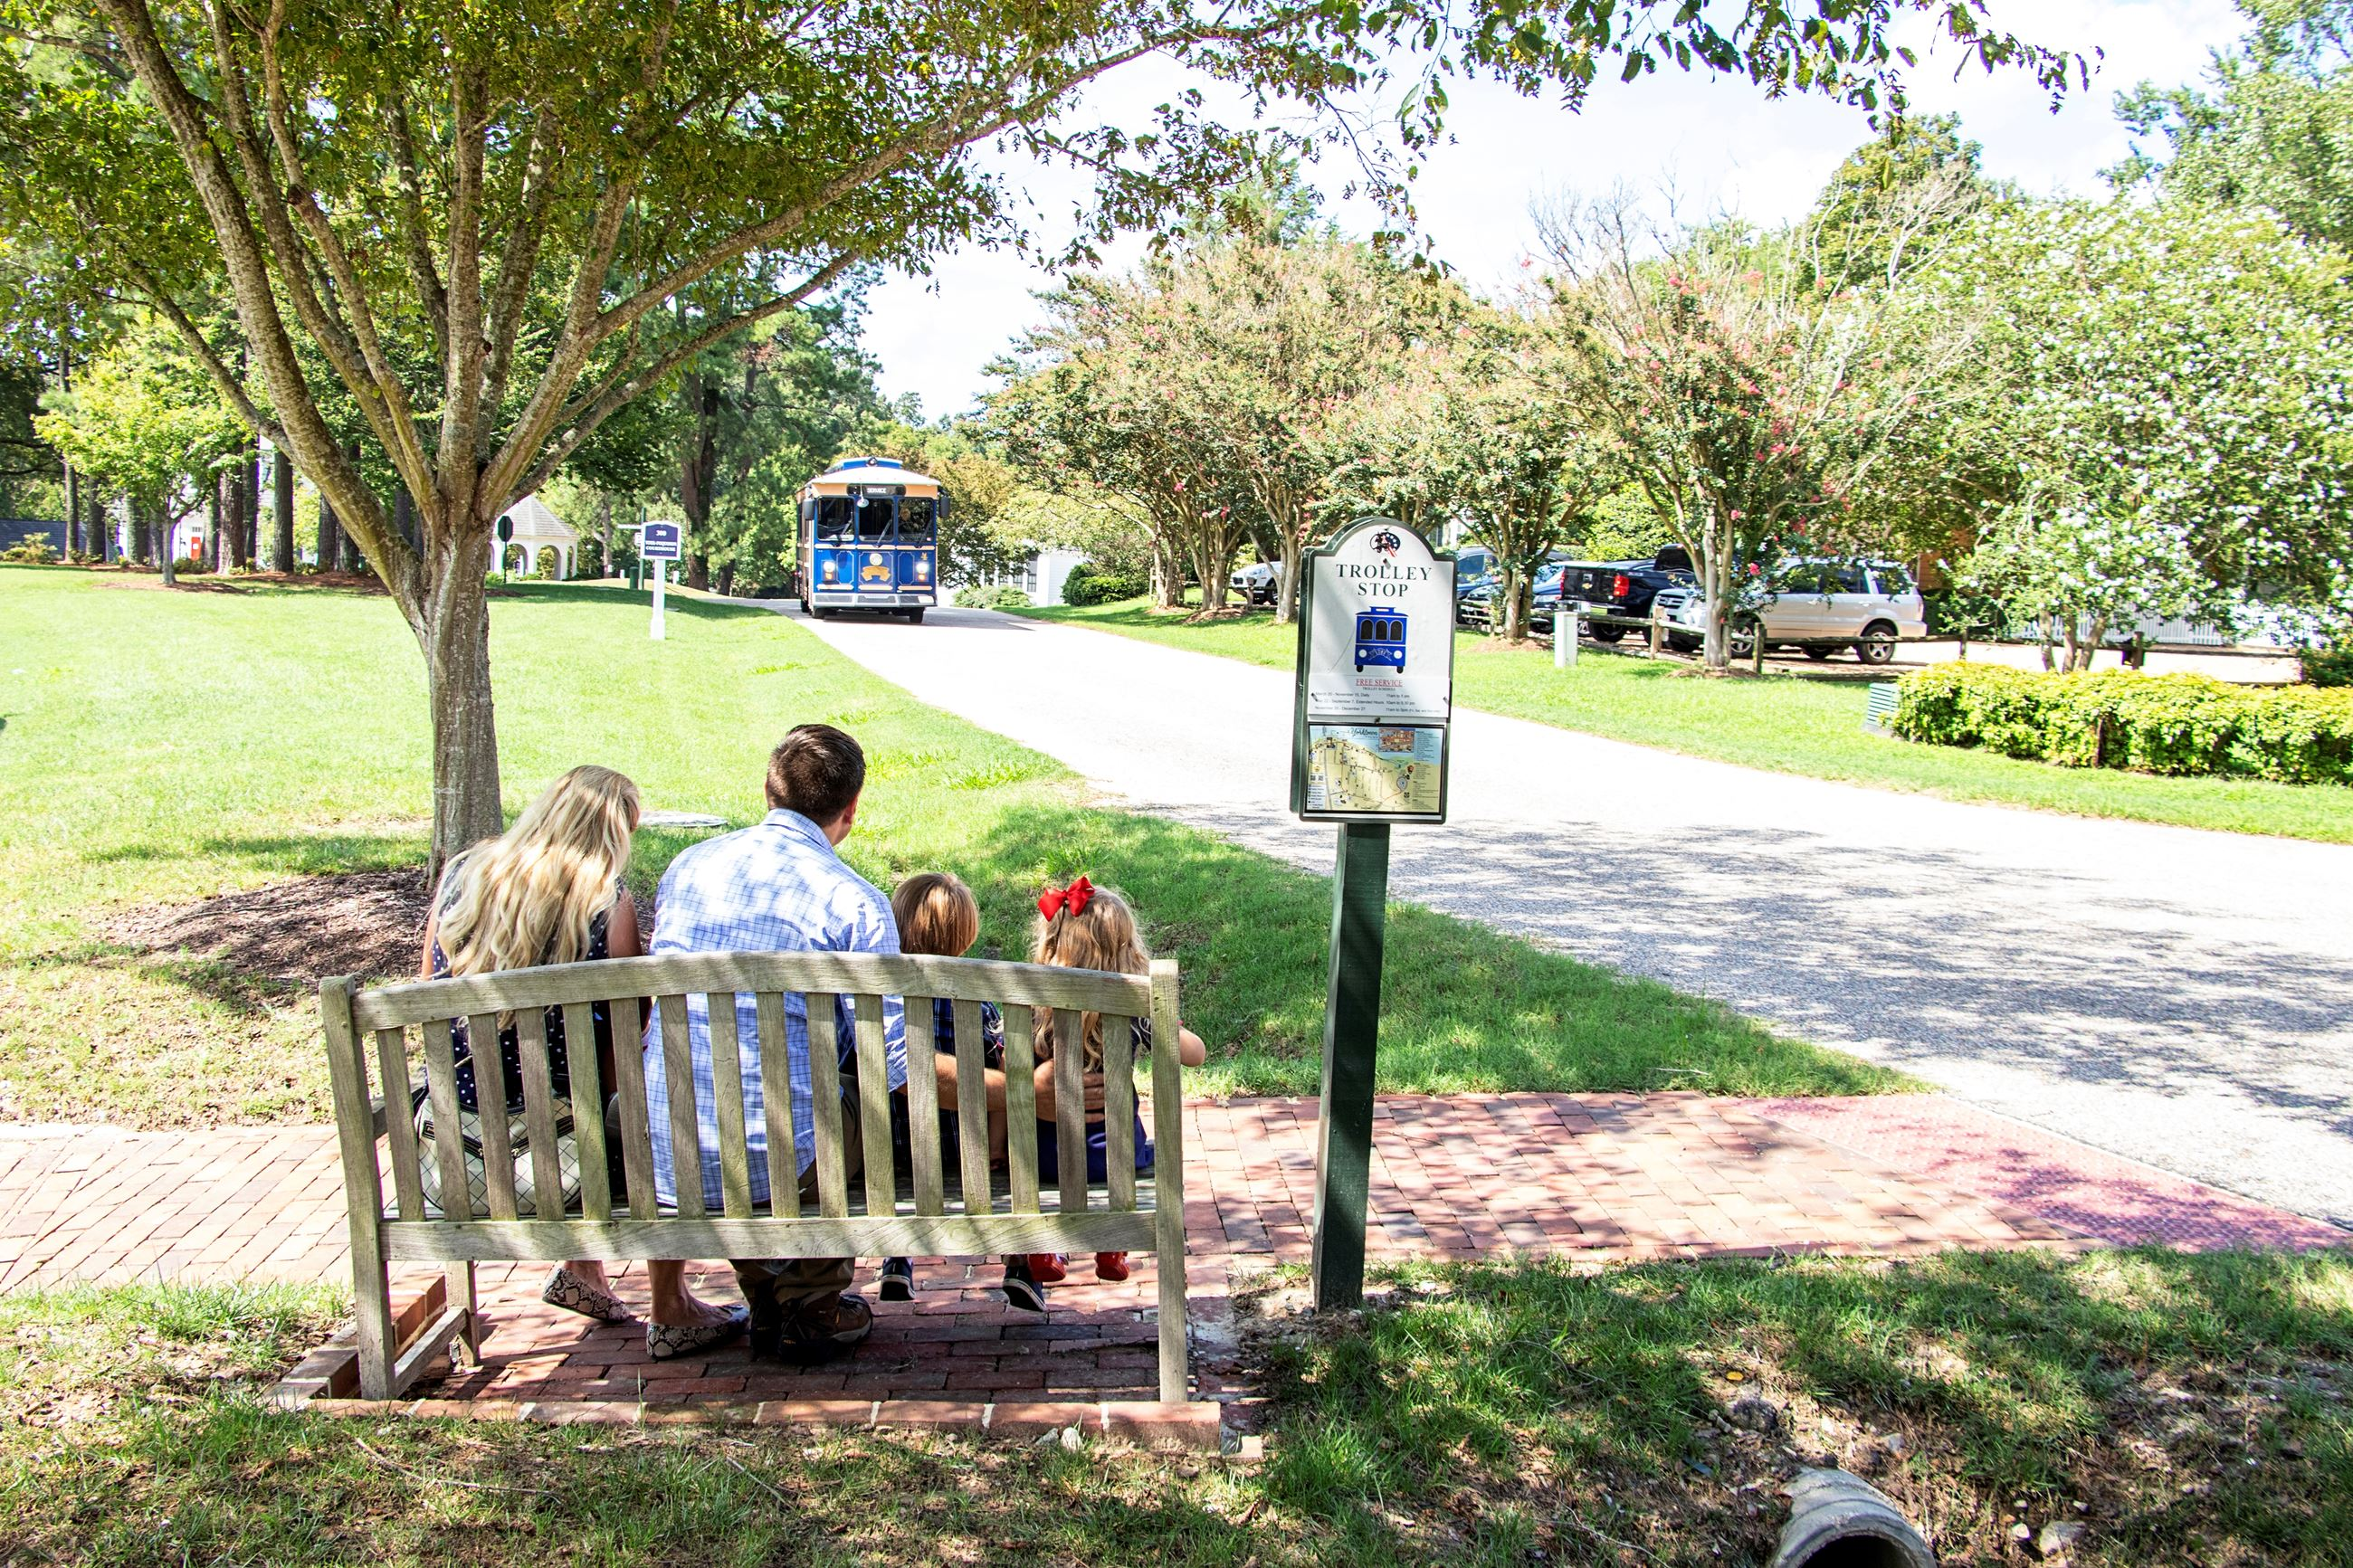 Family waiting at Trolley Stop as it pulls up